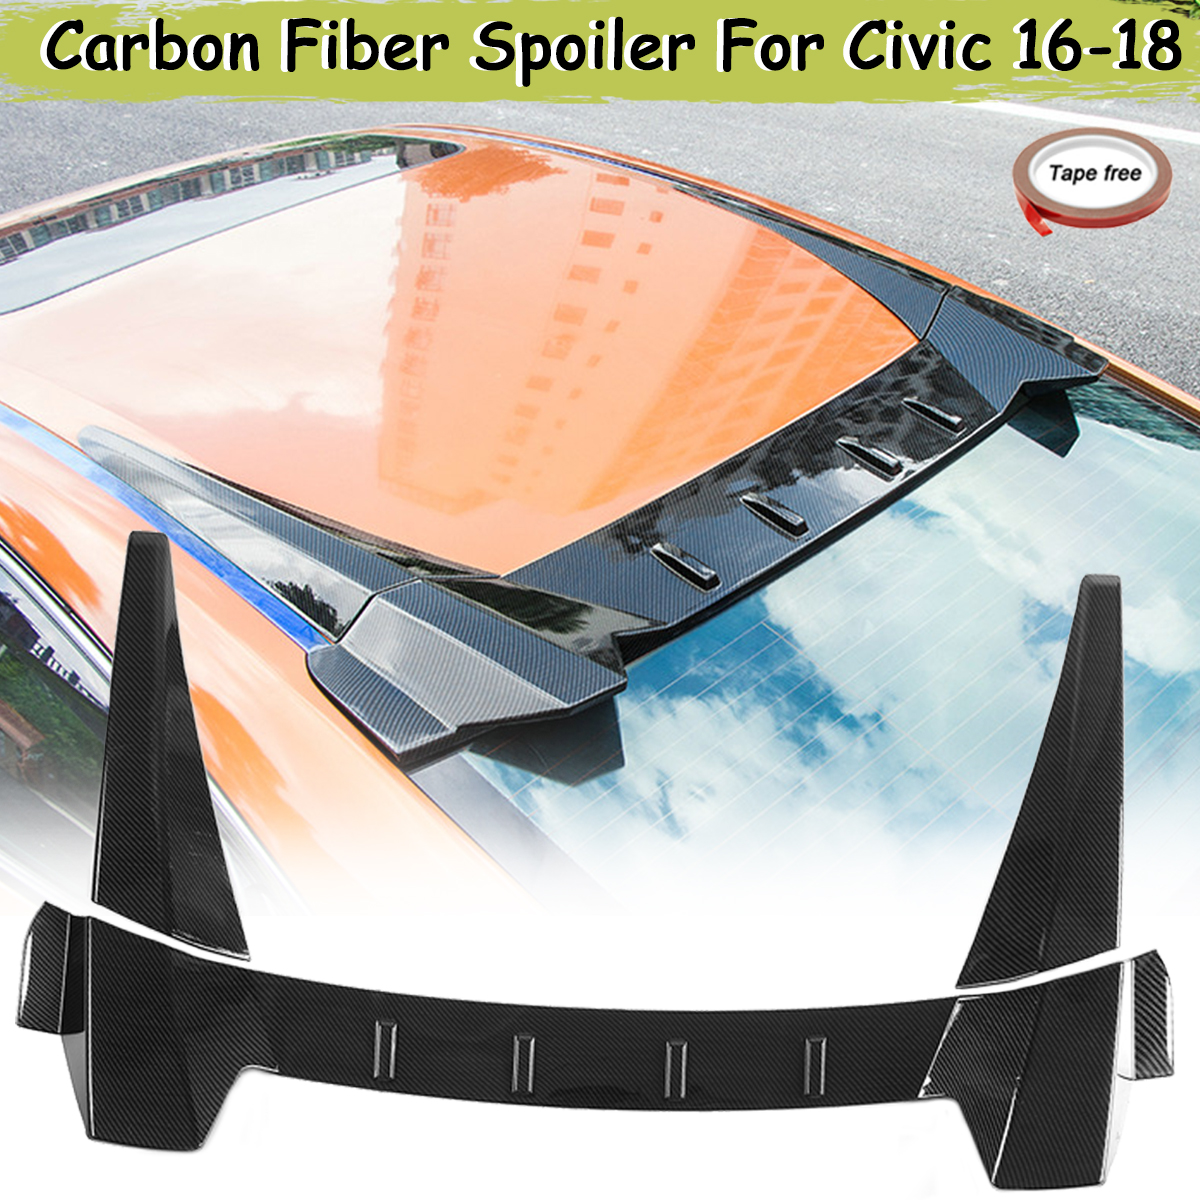 ABS Carbon Fiber Color R Style Rear Window Roof Spoiler Diffuser For Honda For Civic 4Dr For Sedan 2016 2017 2018ABS Carbon Fiber Color R Style Rear Window Roof Spoiler Diffuser For Honda For Civic 4Dr For Sedan 2016 2017 2018